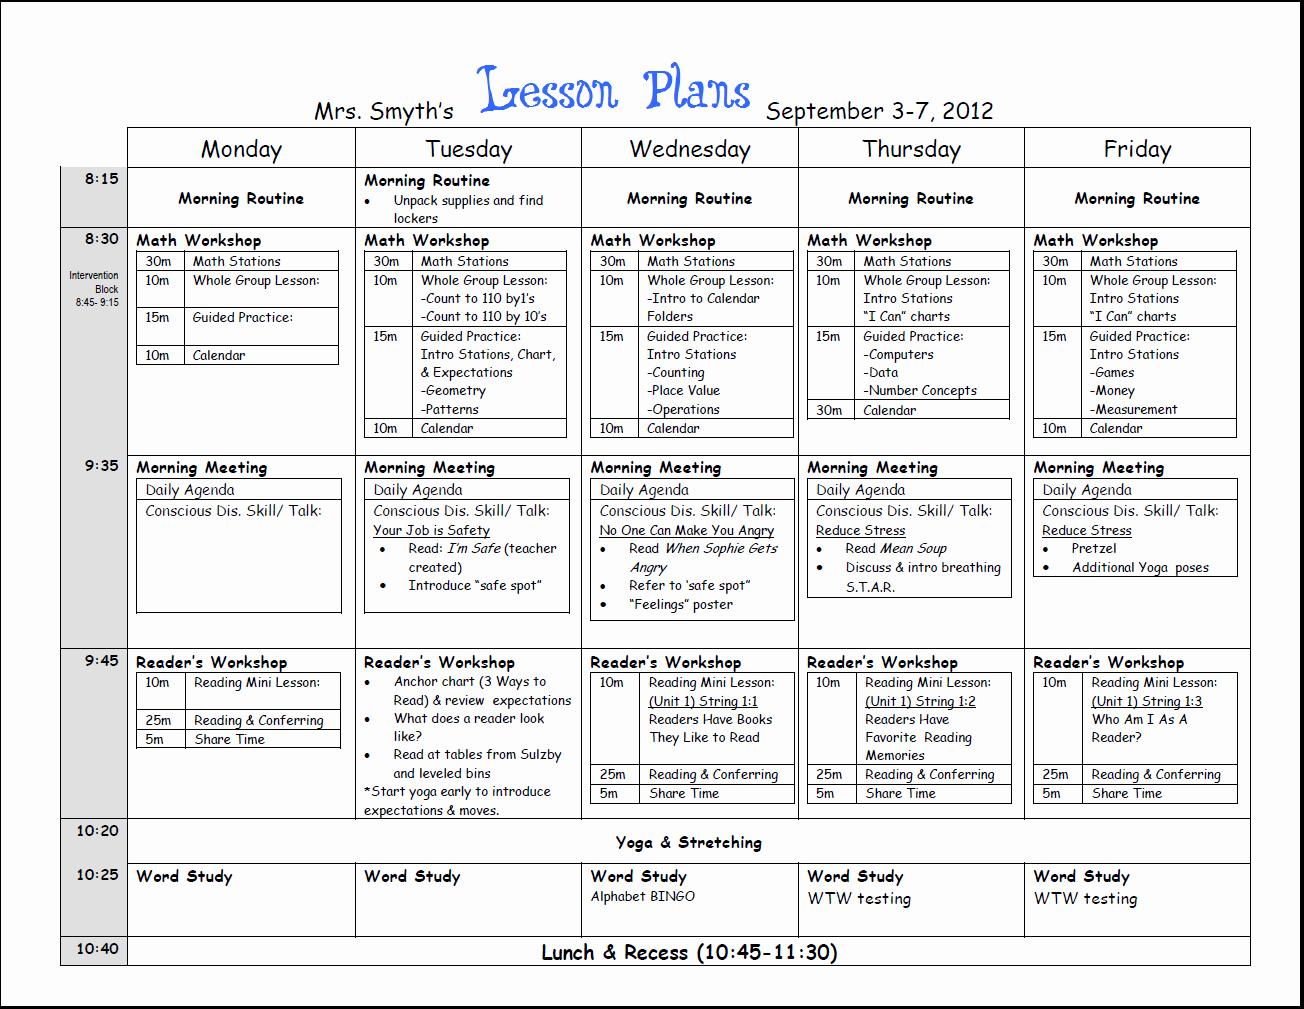 Google Sheets Lesson Plan Template Best Of Free Weekly Lesson Plan Template and Teacher Resources